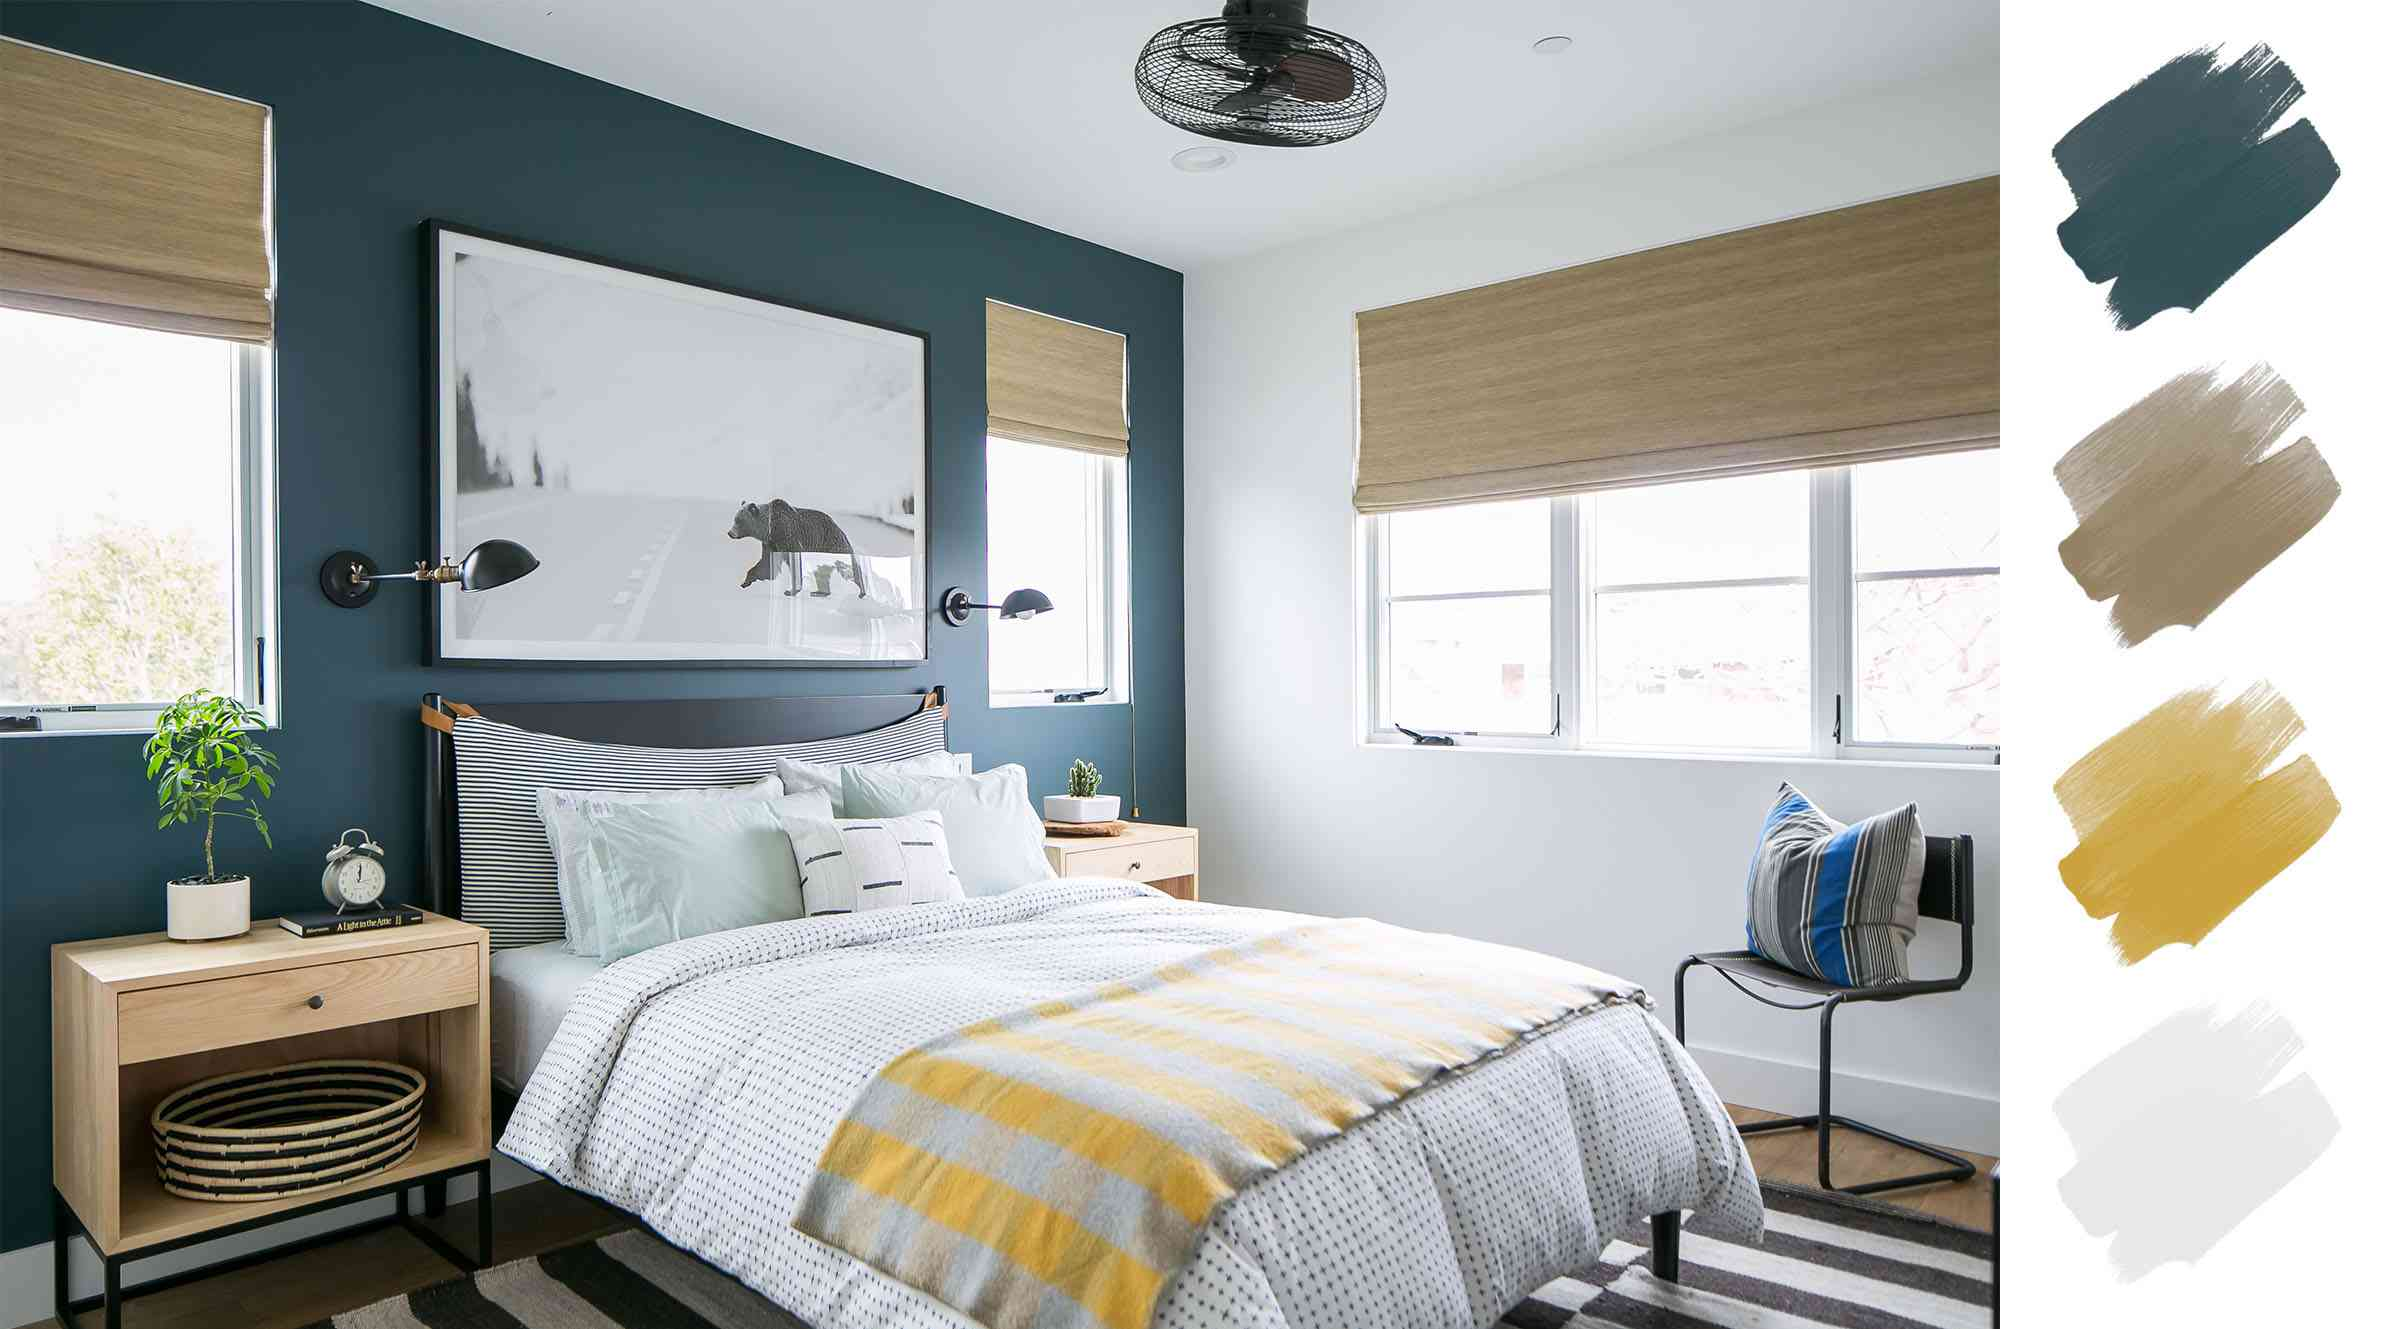 bedroom color schemes - navy white yellow